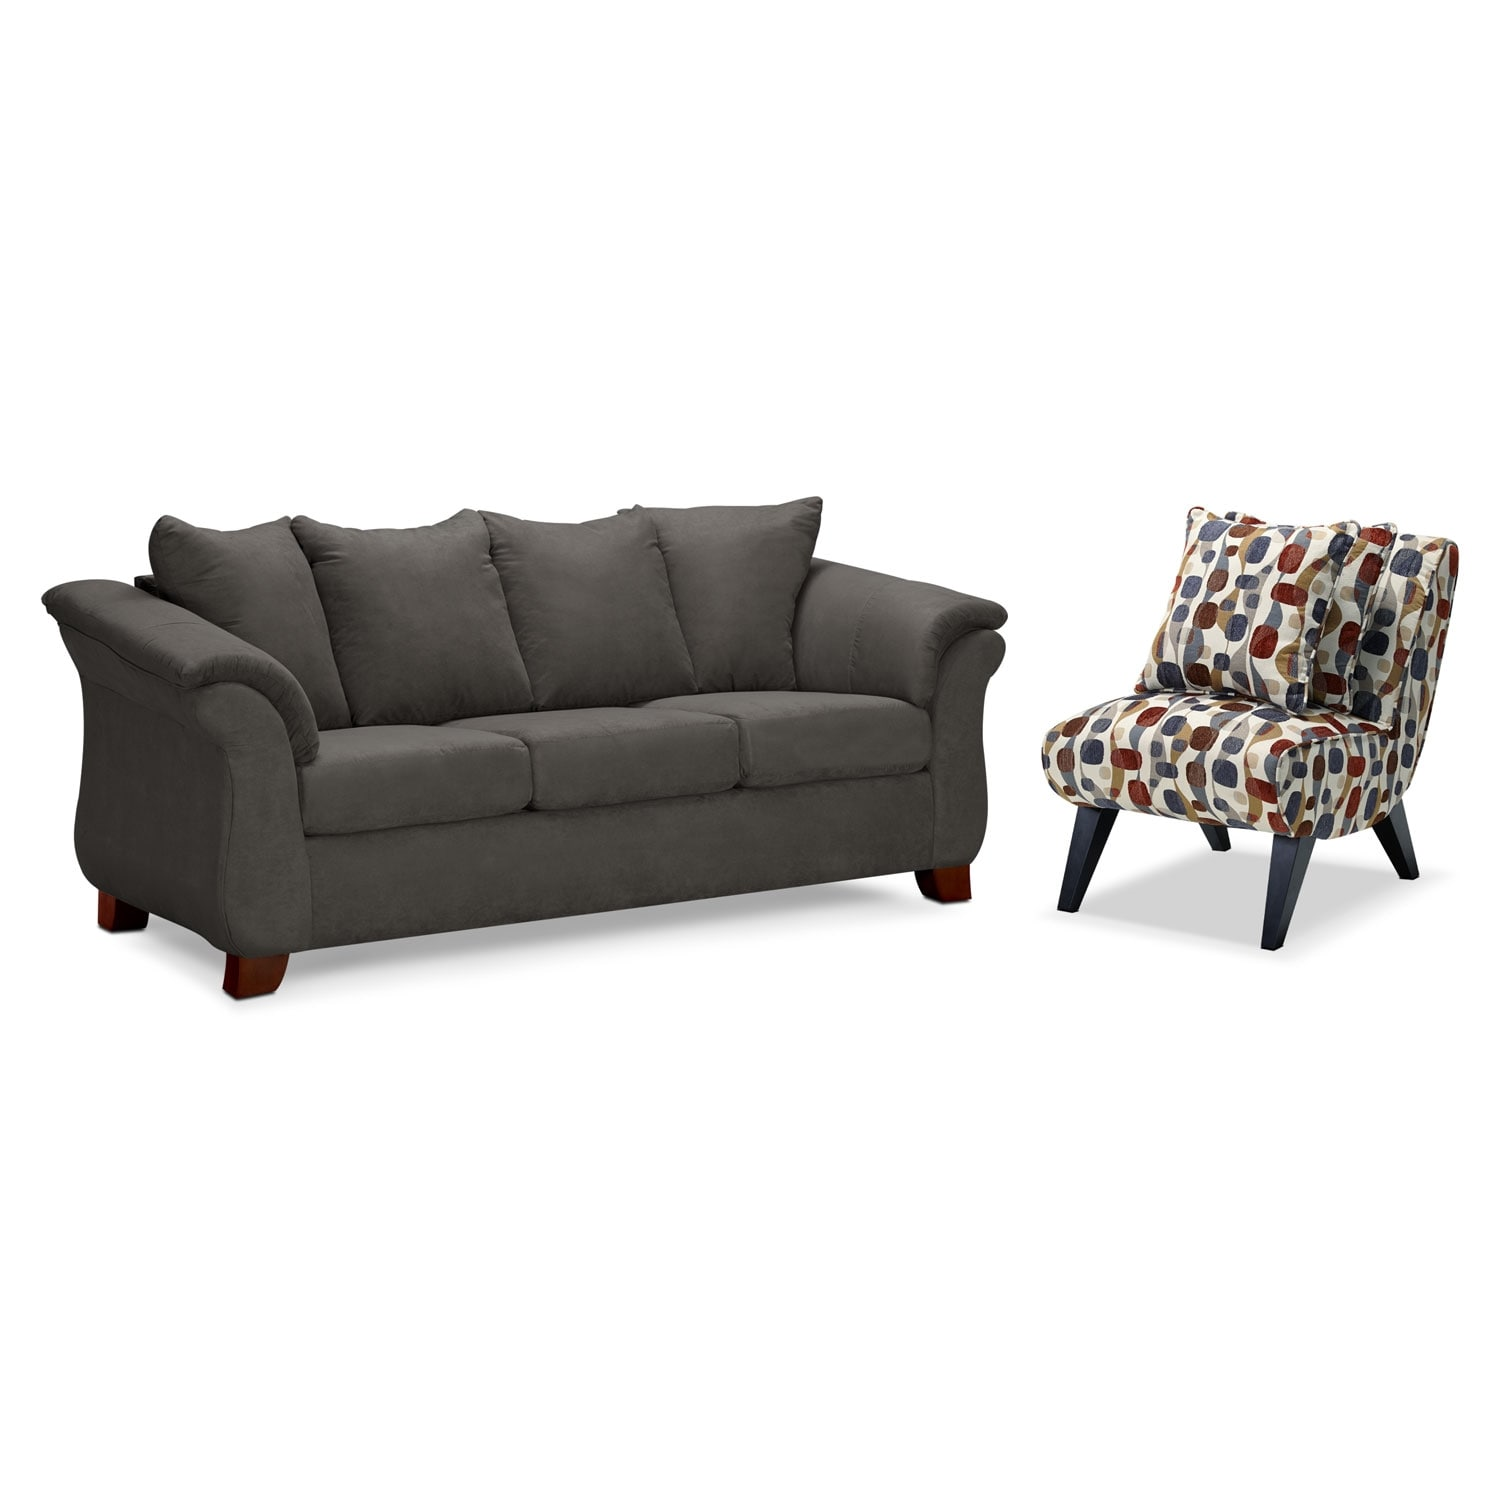 Living Room Furniture - Adrian Sofa and Accent Chair Set - Graphite